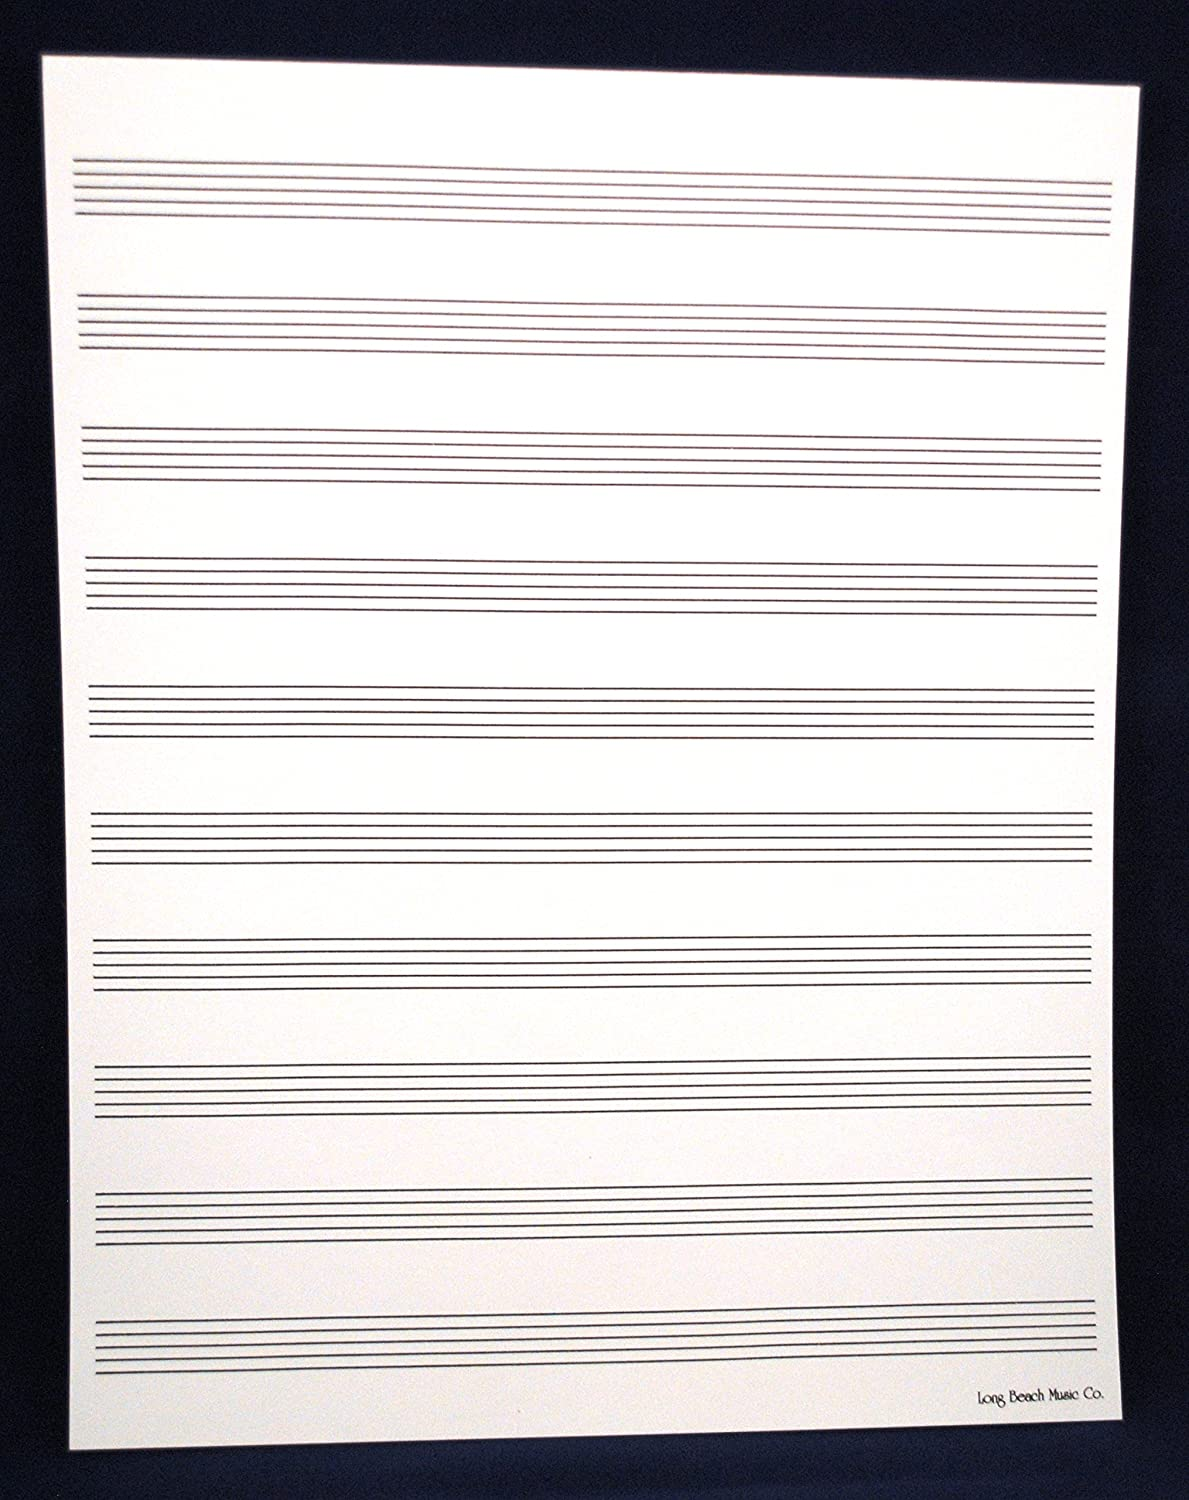 Manuscript Paper 10 Staff for Sheet Music Composition, Song Writing, Piano Long Beach Music 4334225069